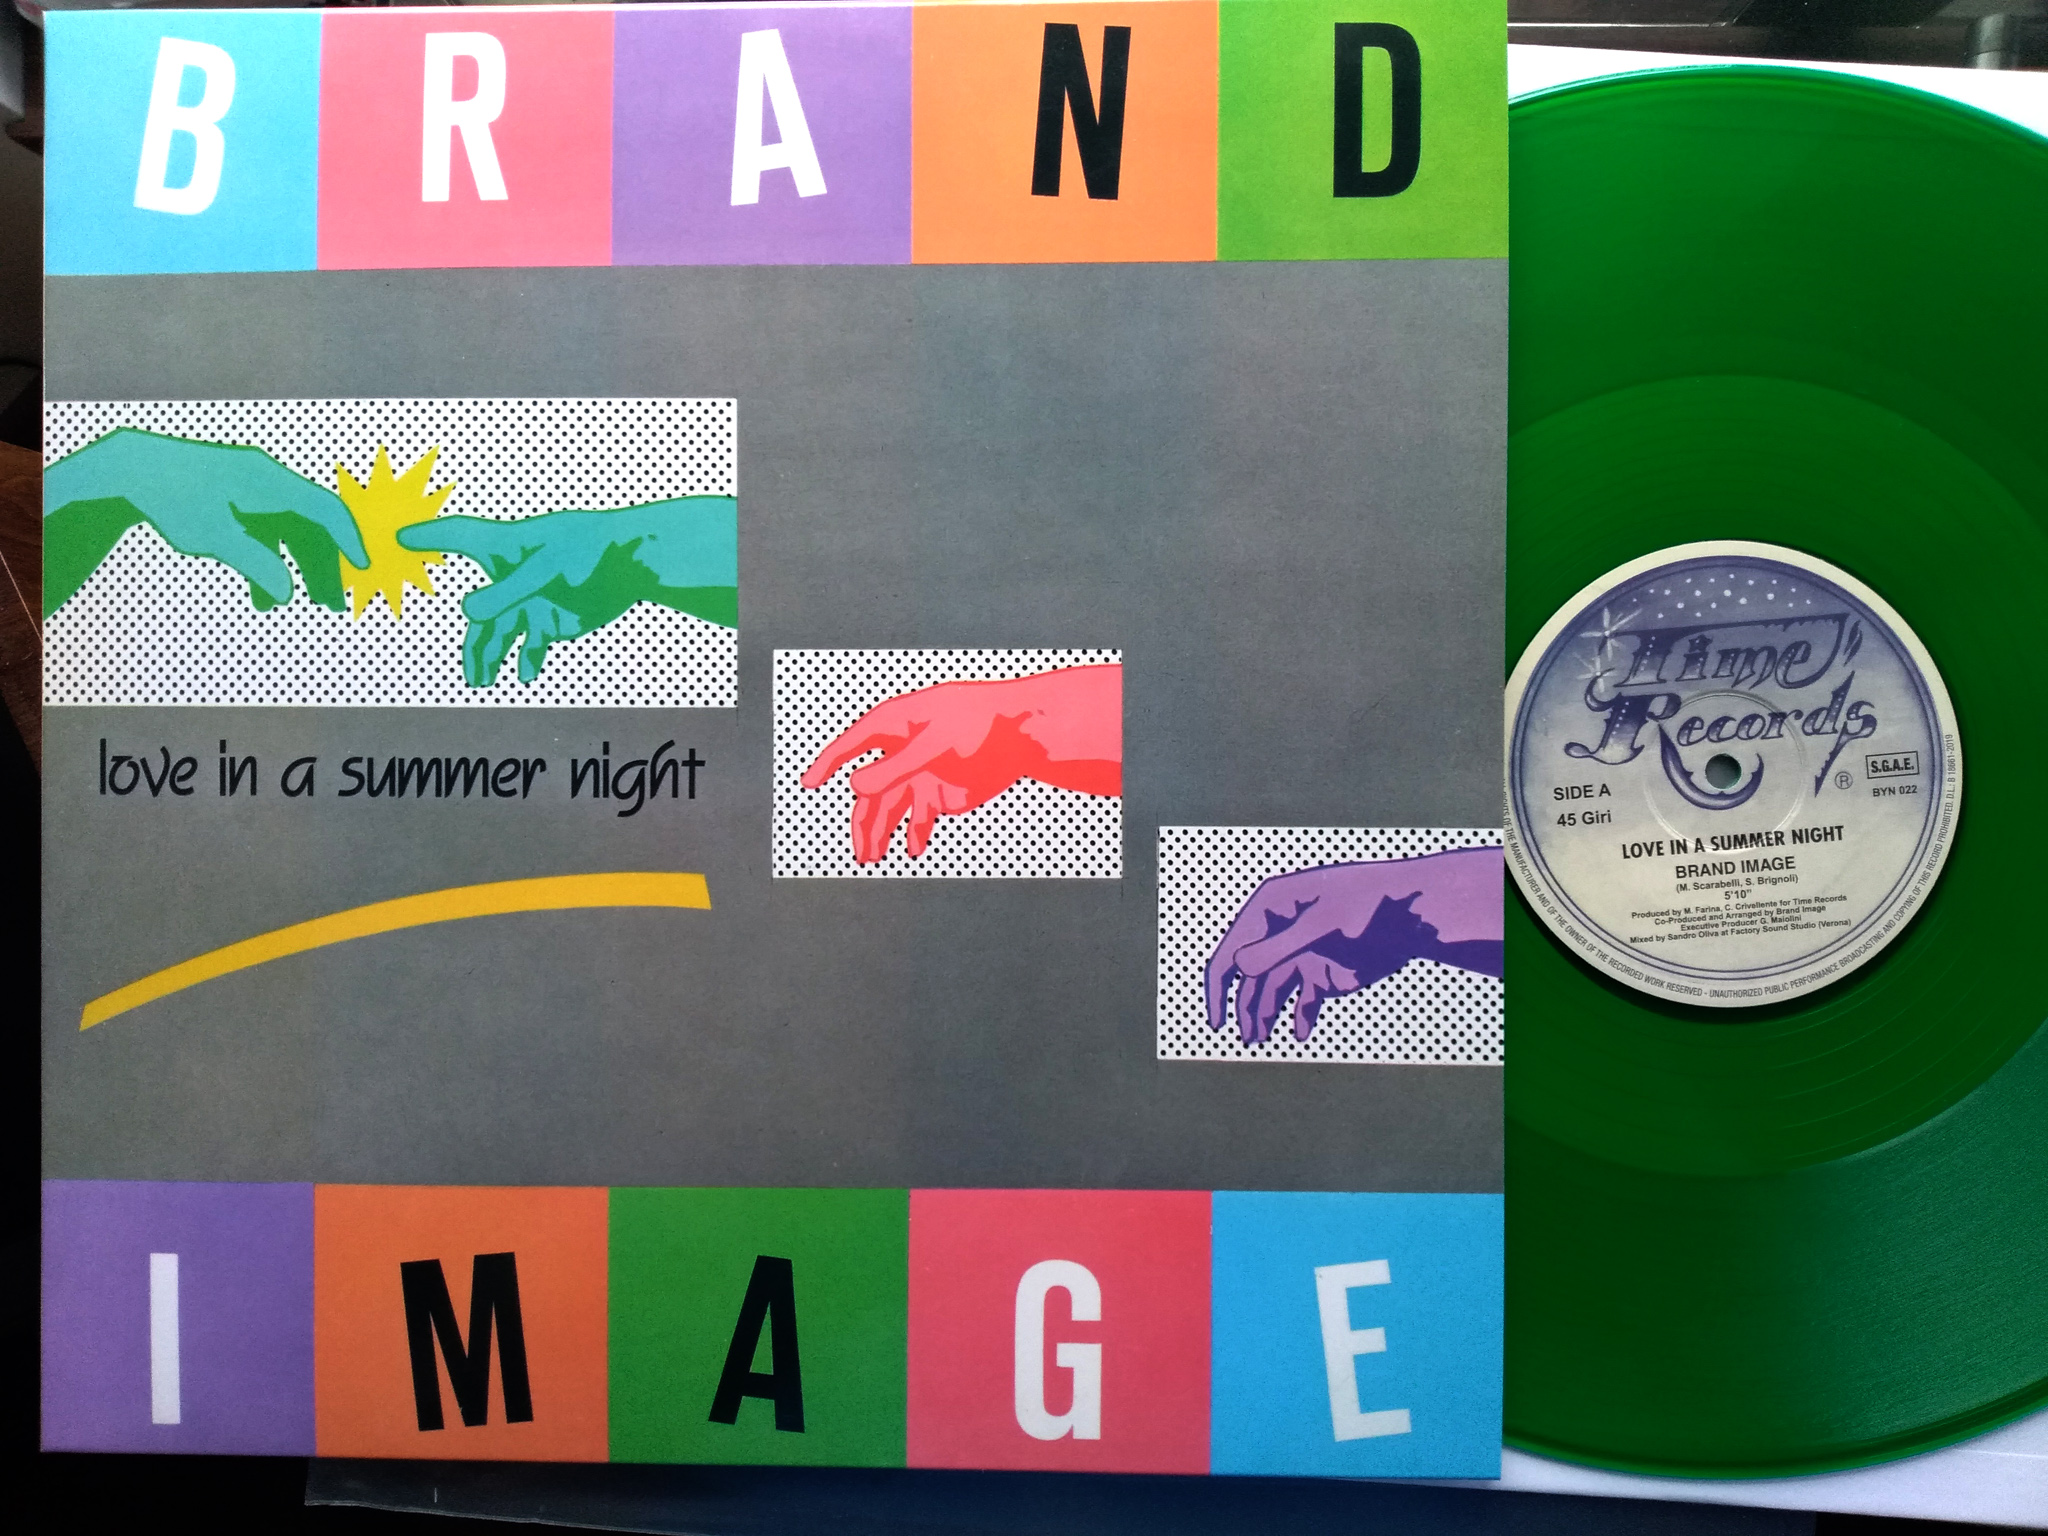 Brand Image - Love In A Summer Night